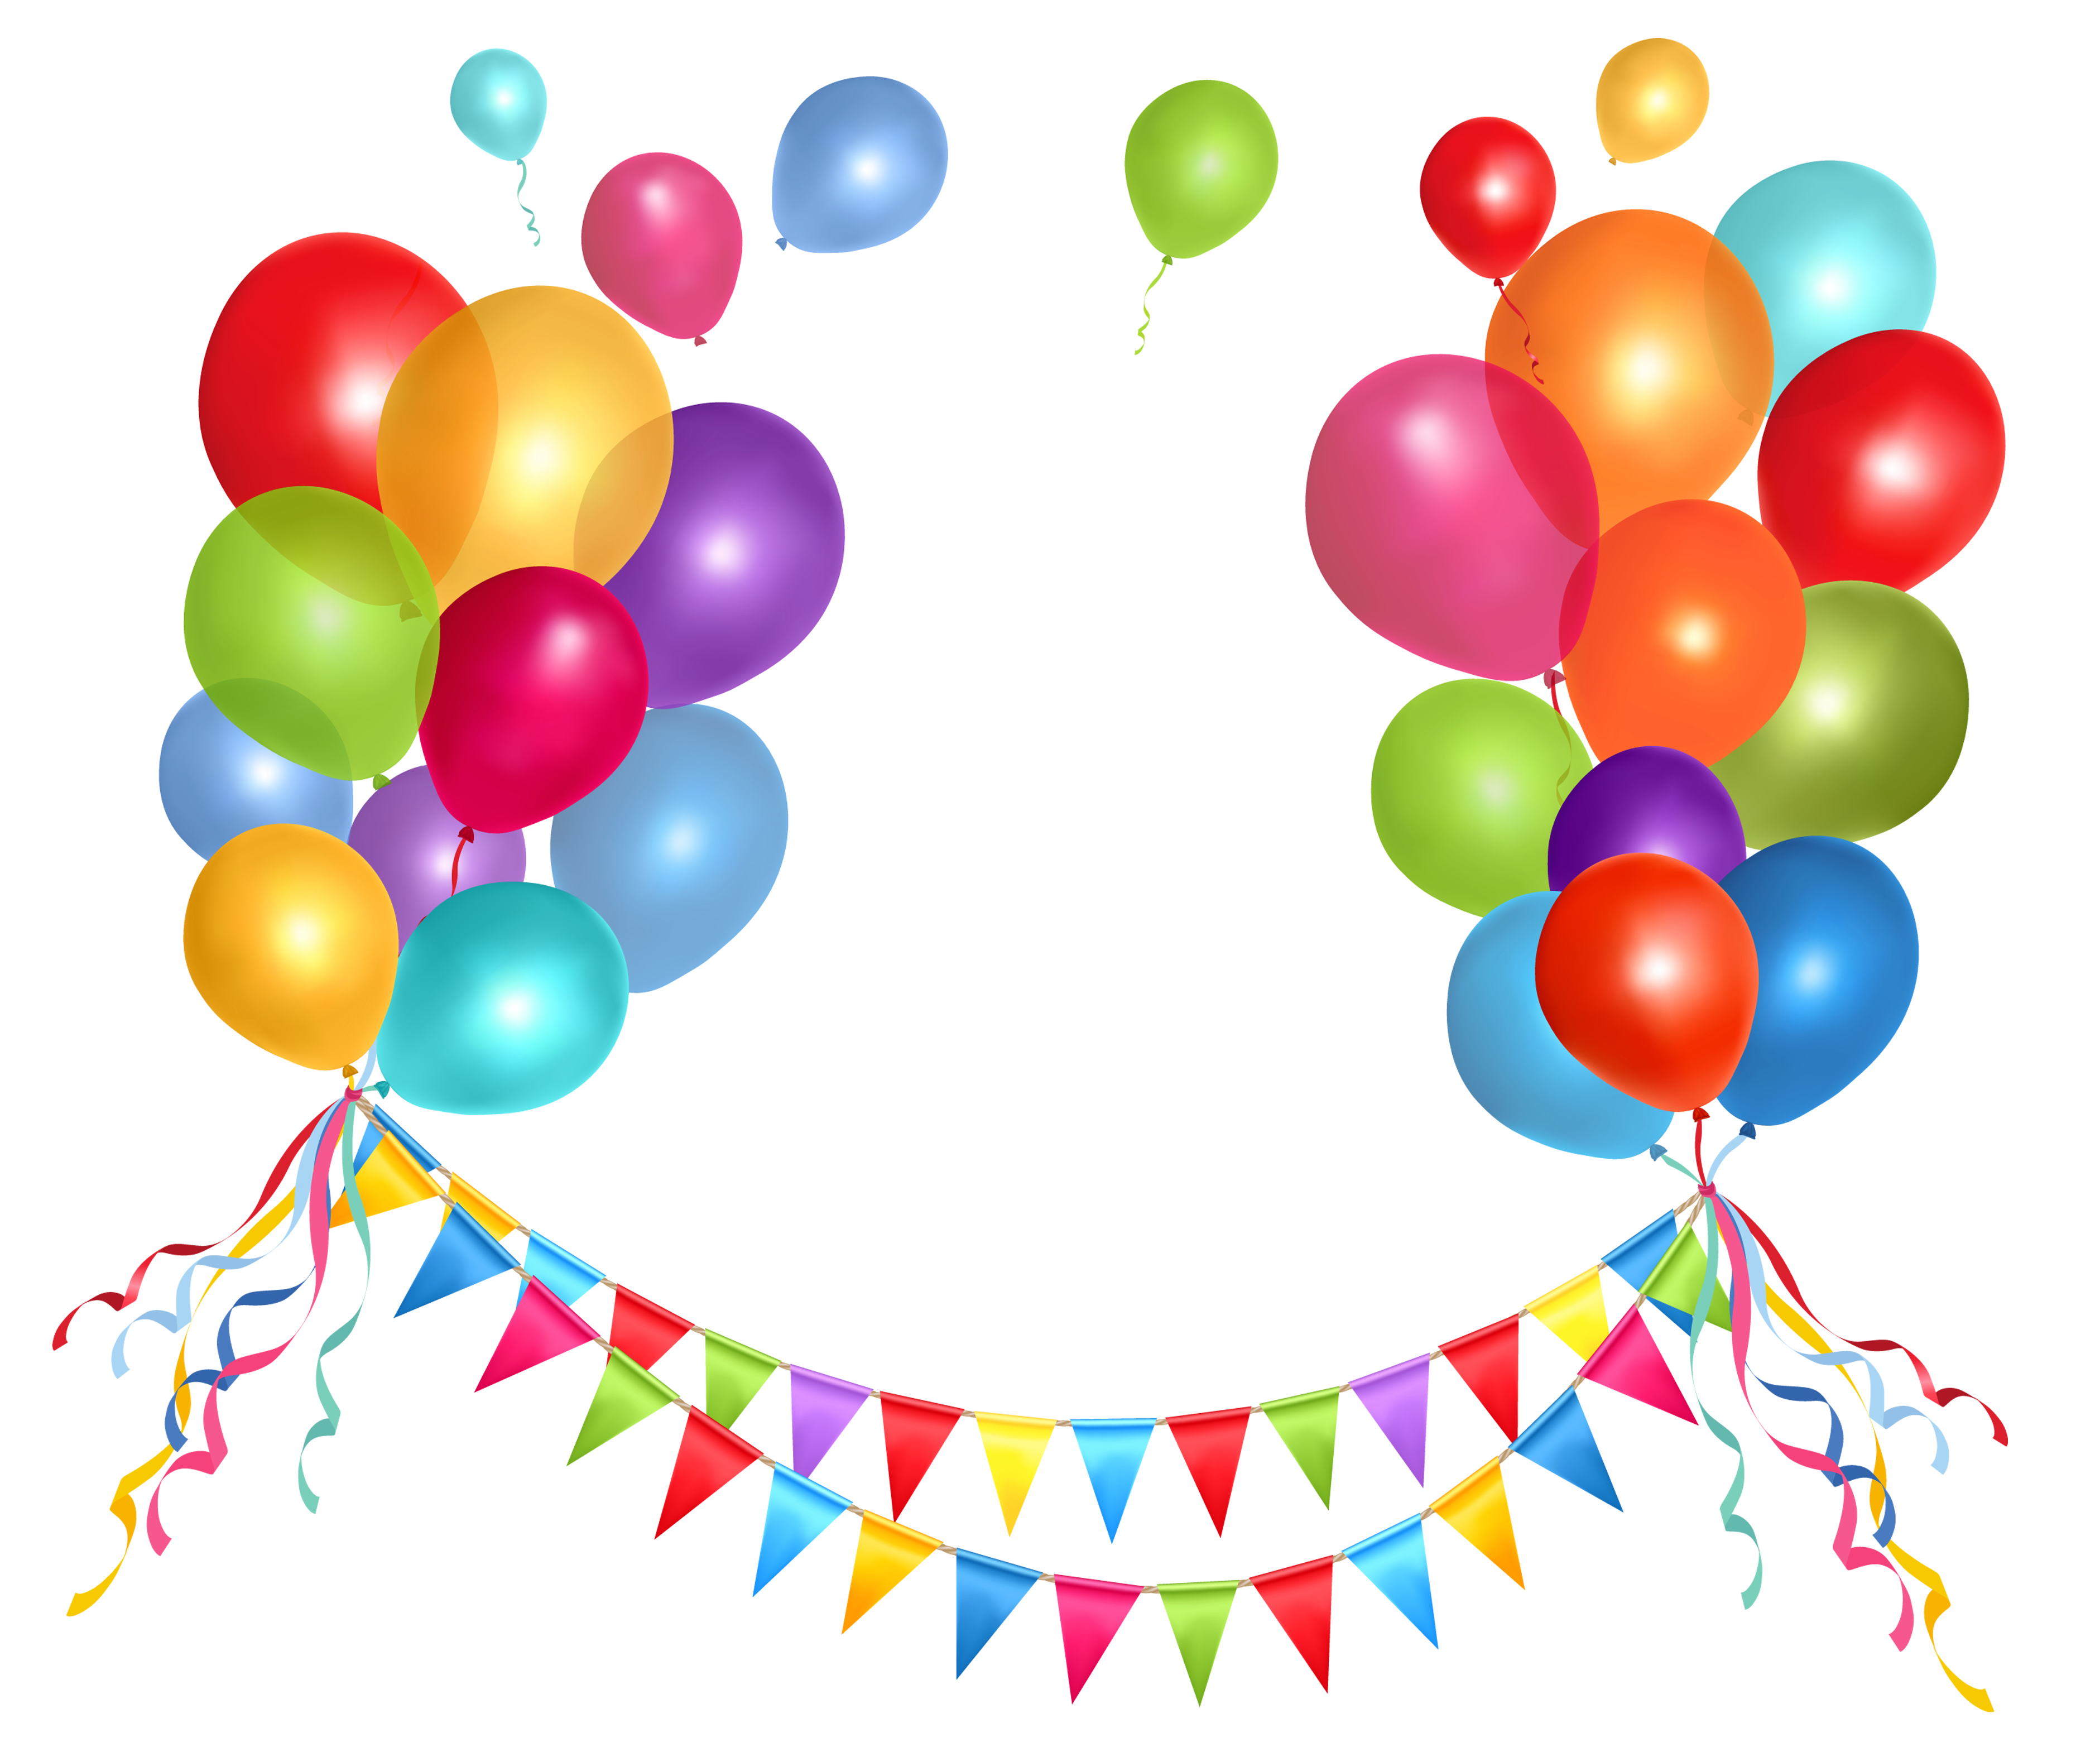 Balloons streamers clipart royalty free library Balloons And Streamers Png & Free Balloons And Streamers.png ... royalty free library